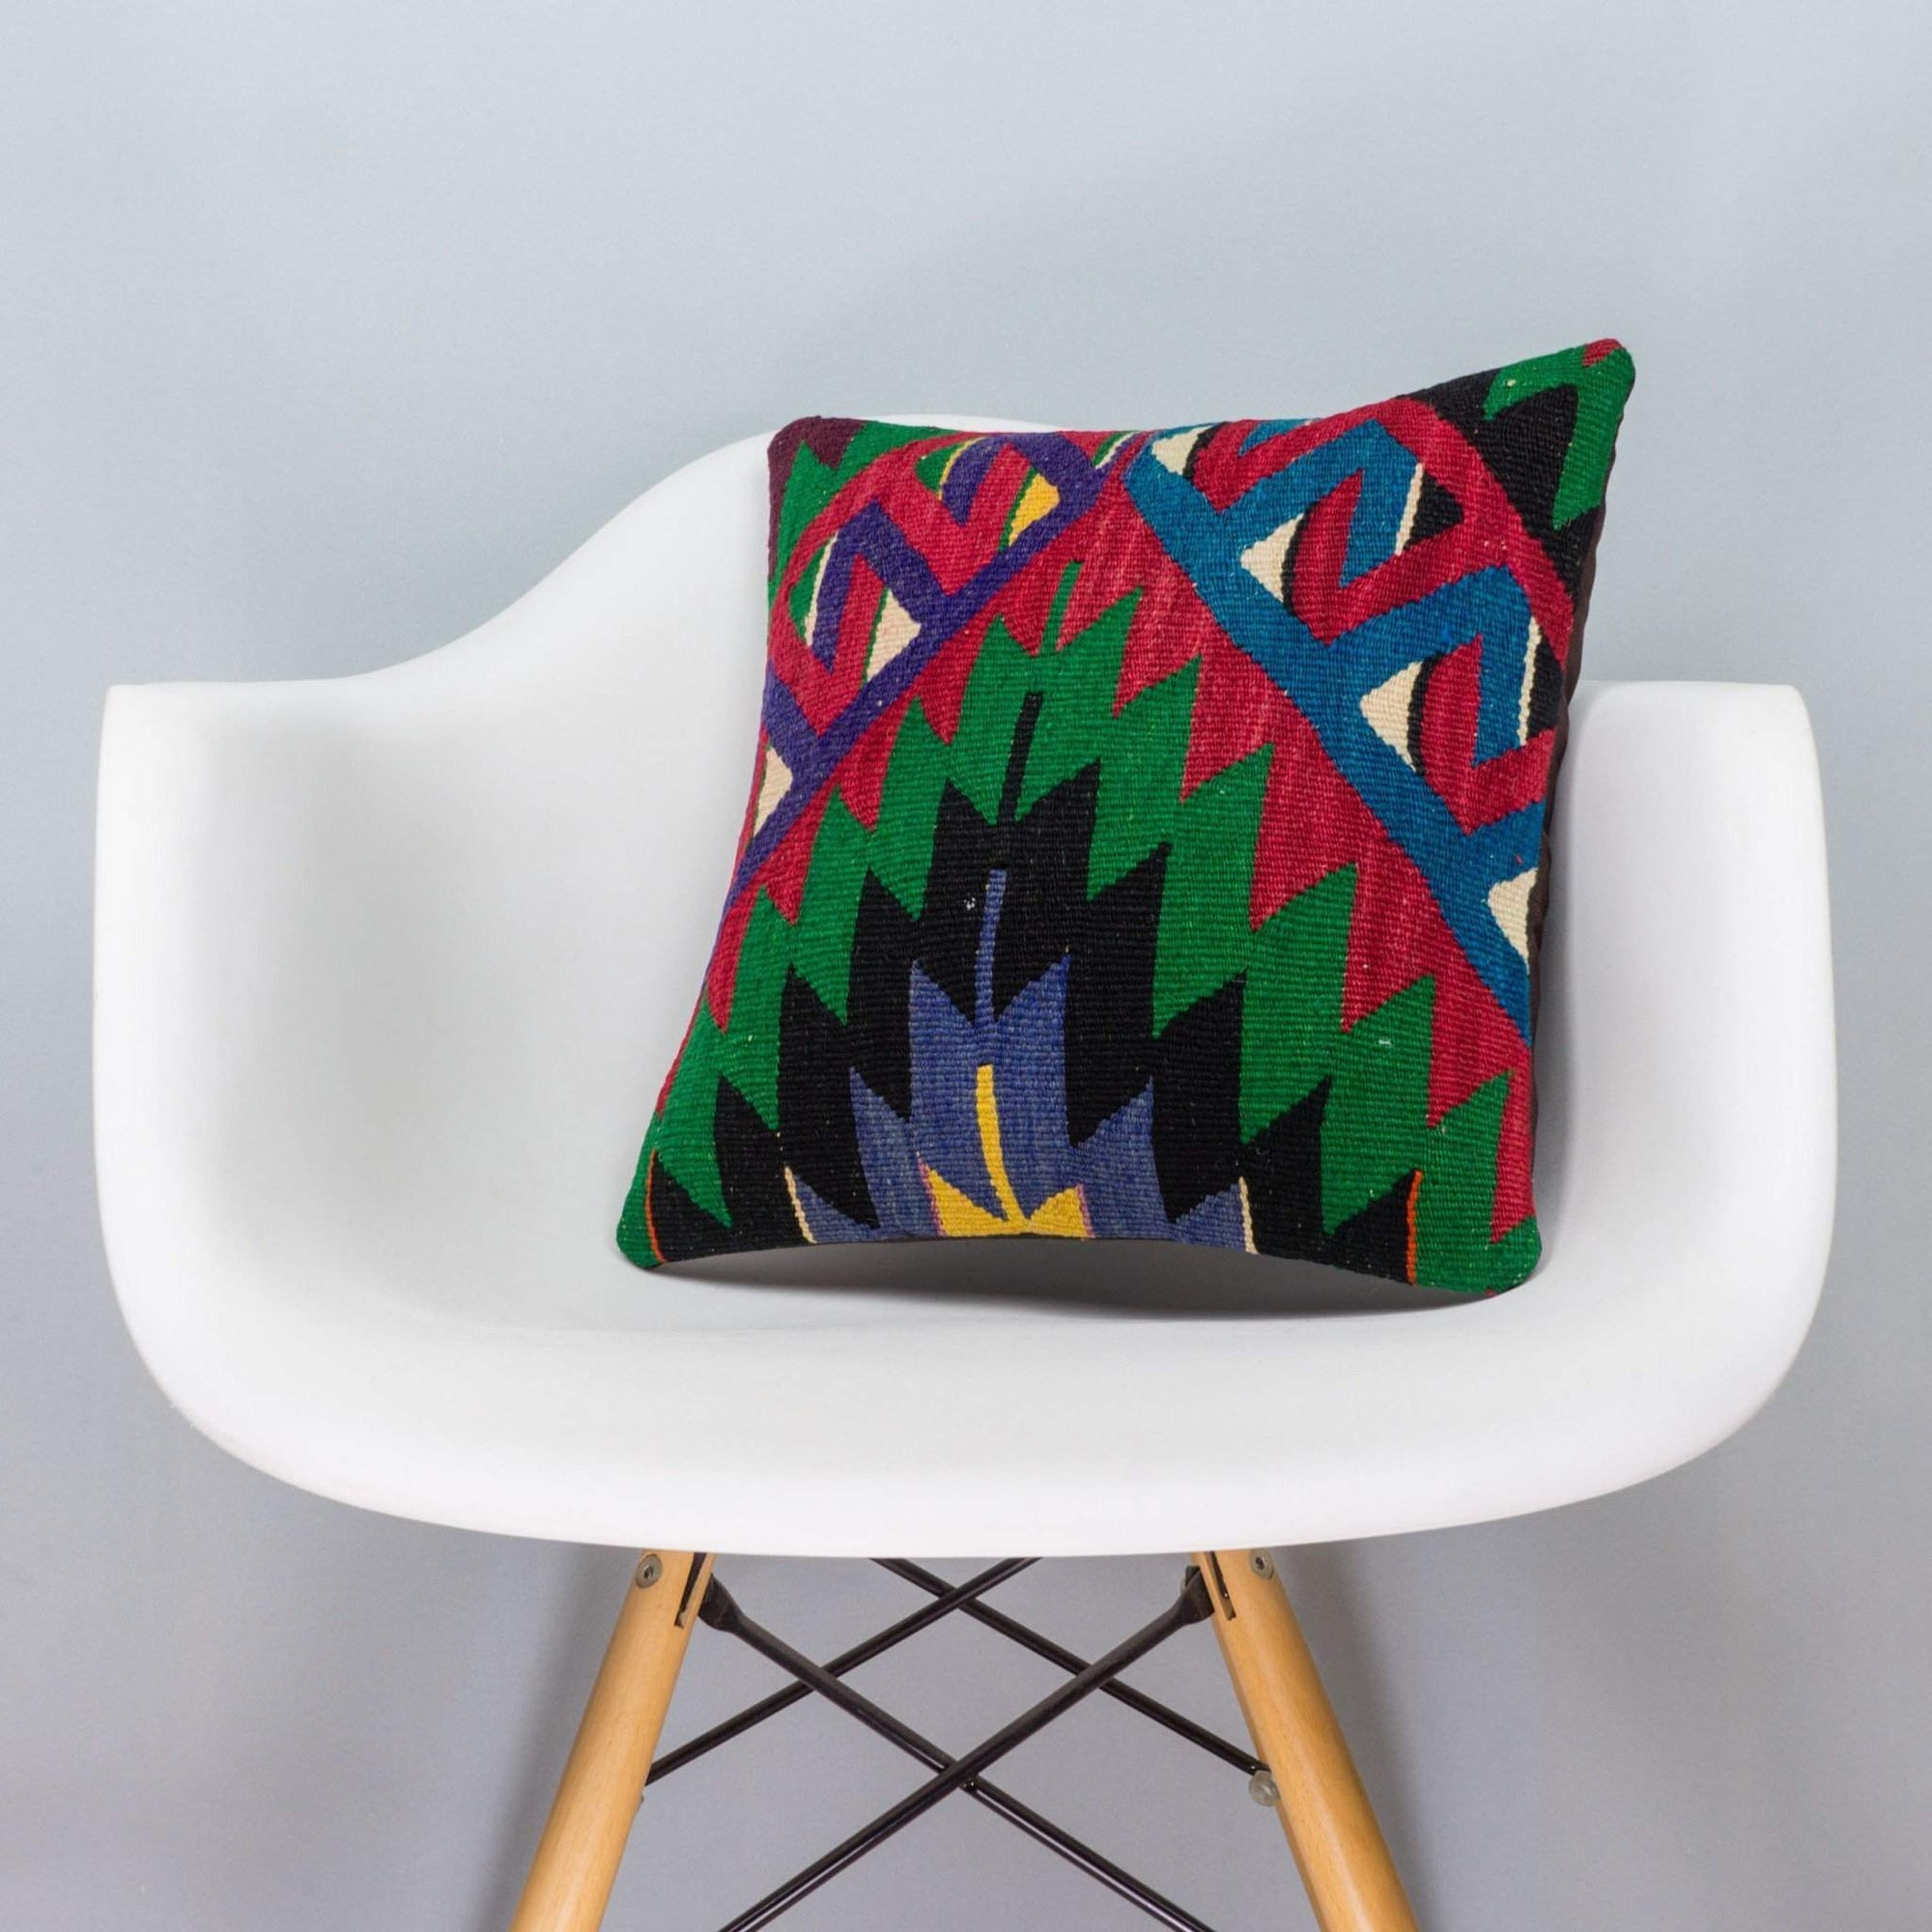 Chevron Multi Color Kilim Pillow Cover 16x16 3296 - kilimpillowstore  - 1